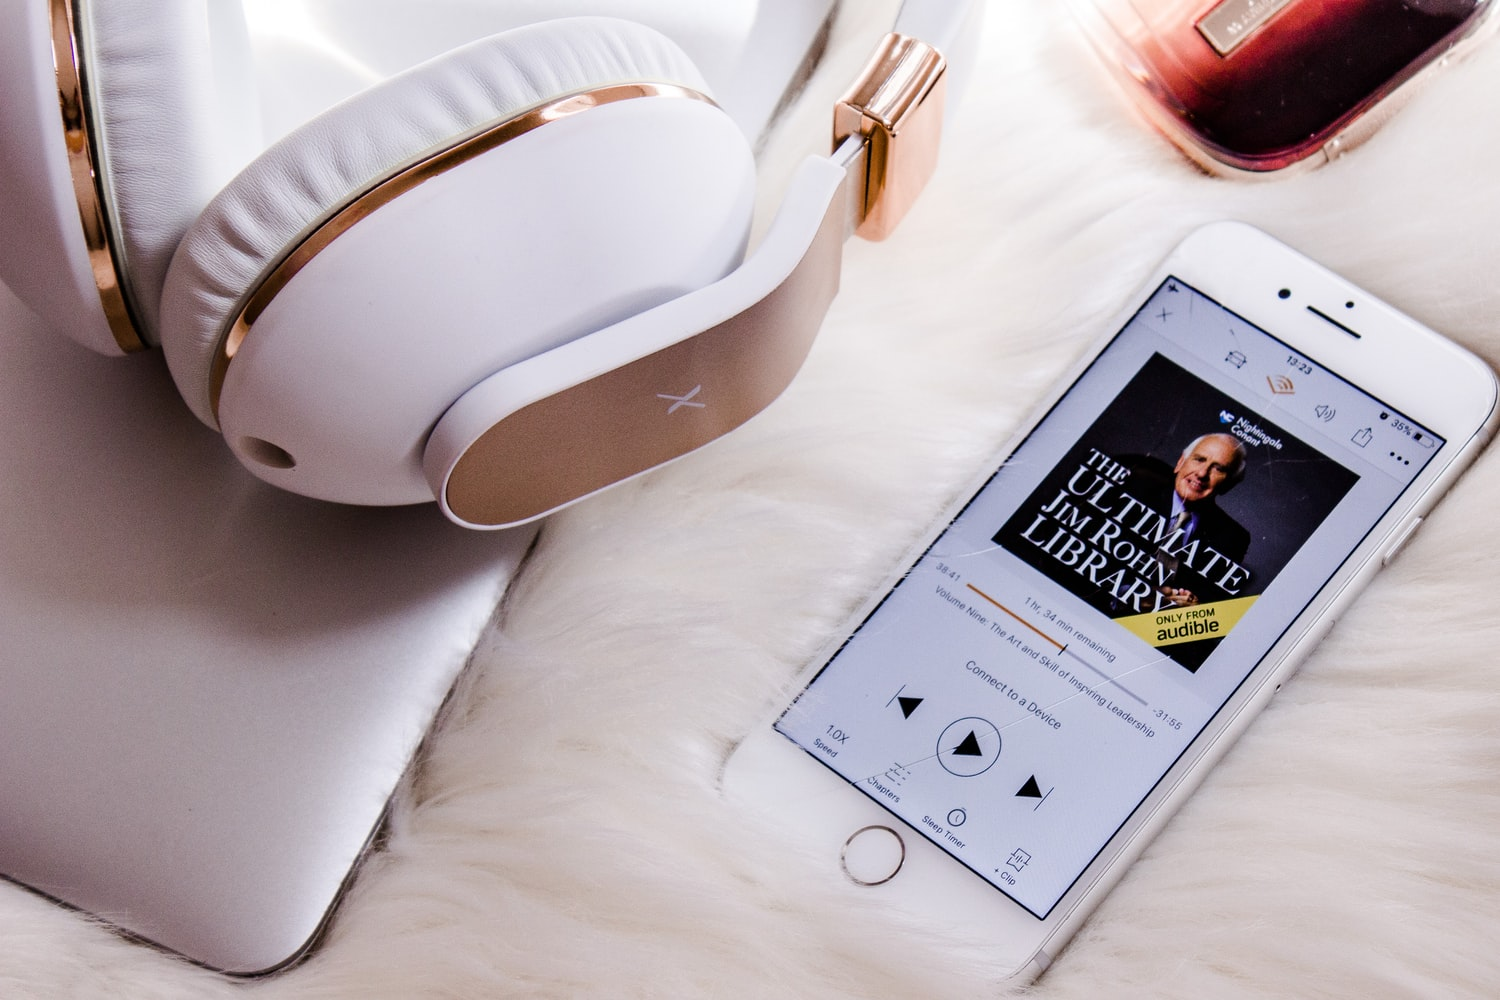 Audible Review 2021: How does Audible work and is it worth it?